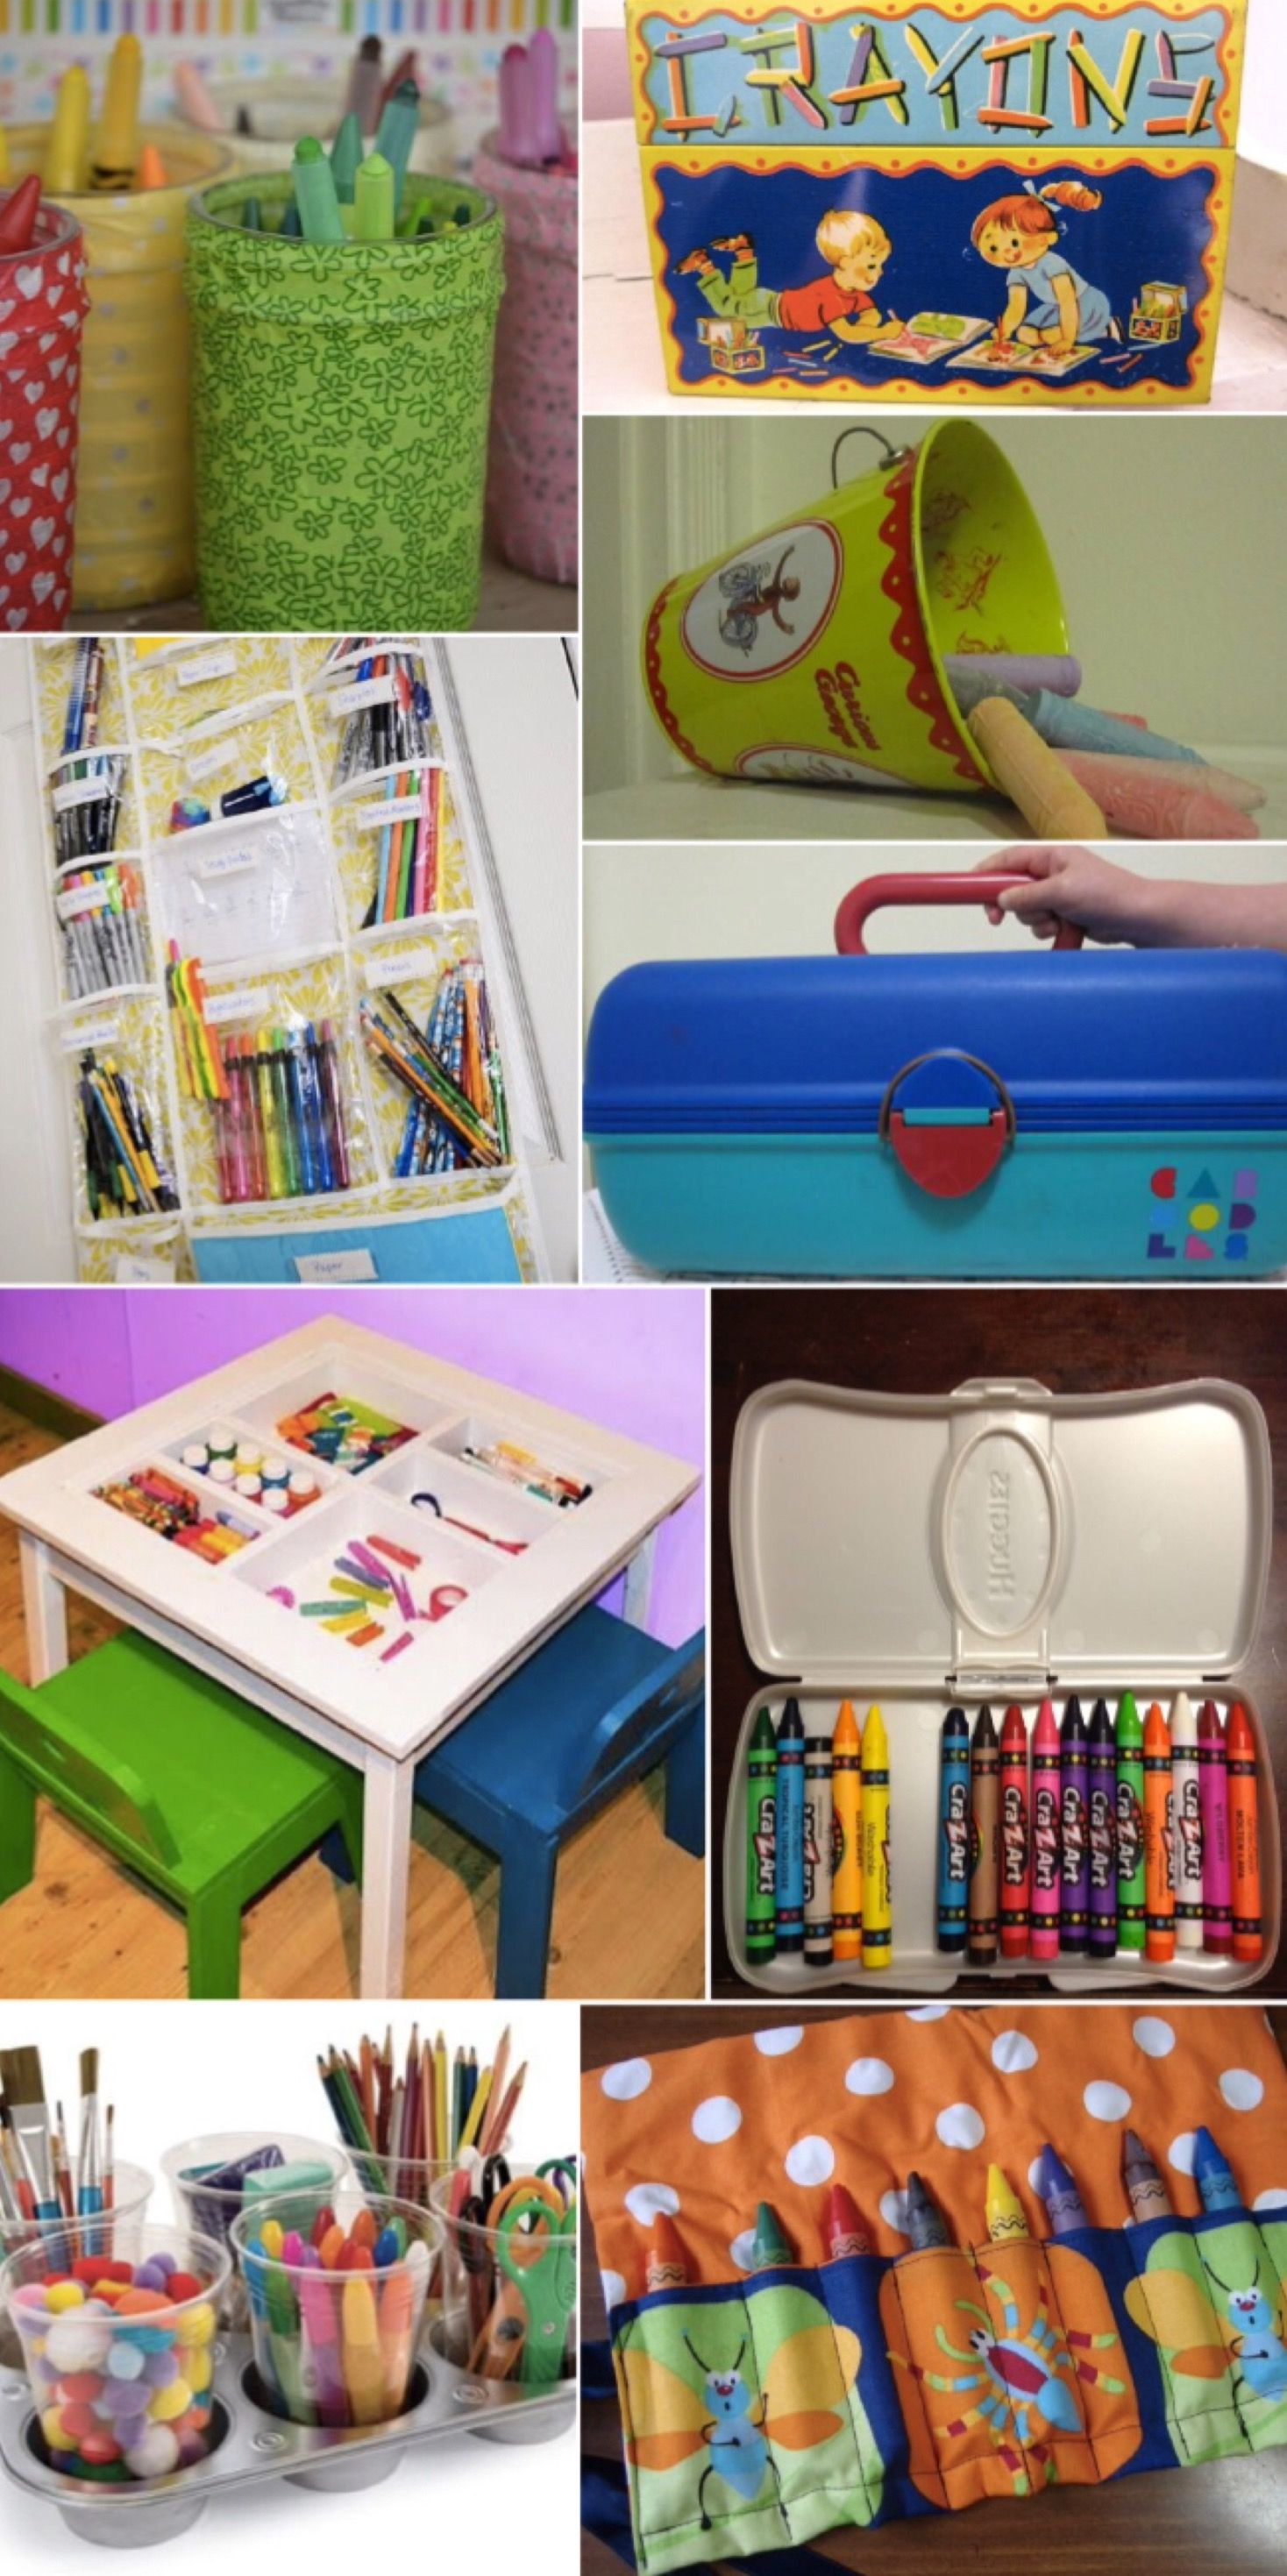 '9 Cool Storage Solutions for Arts & Crafts Clutter...!' (via Red Tricycle)